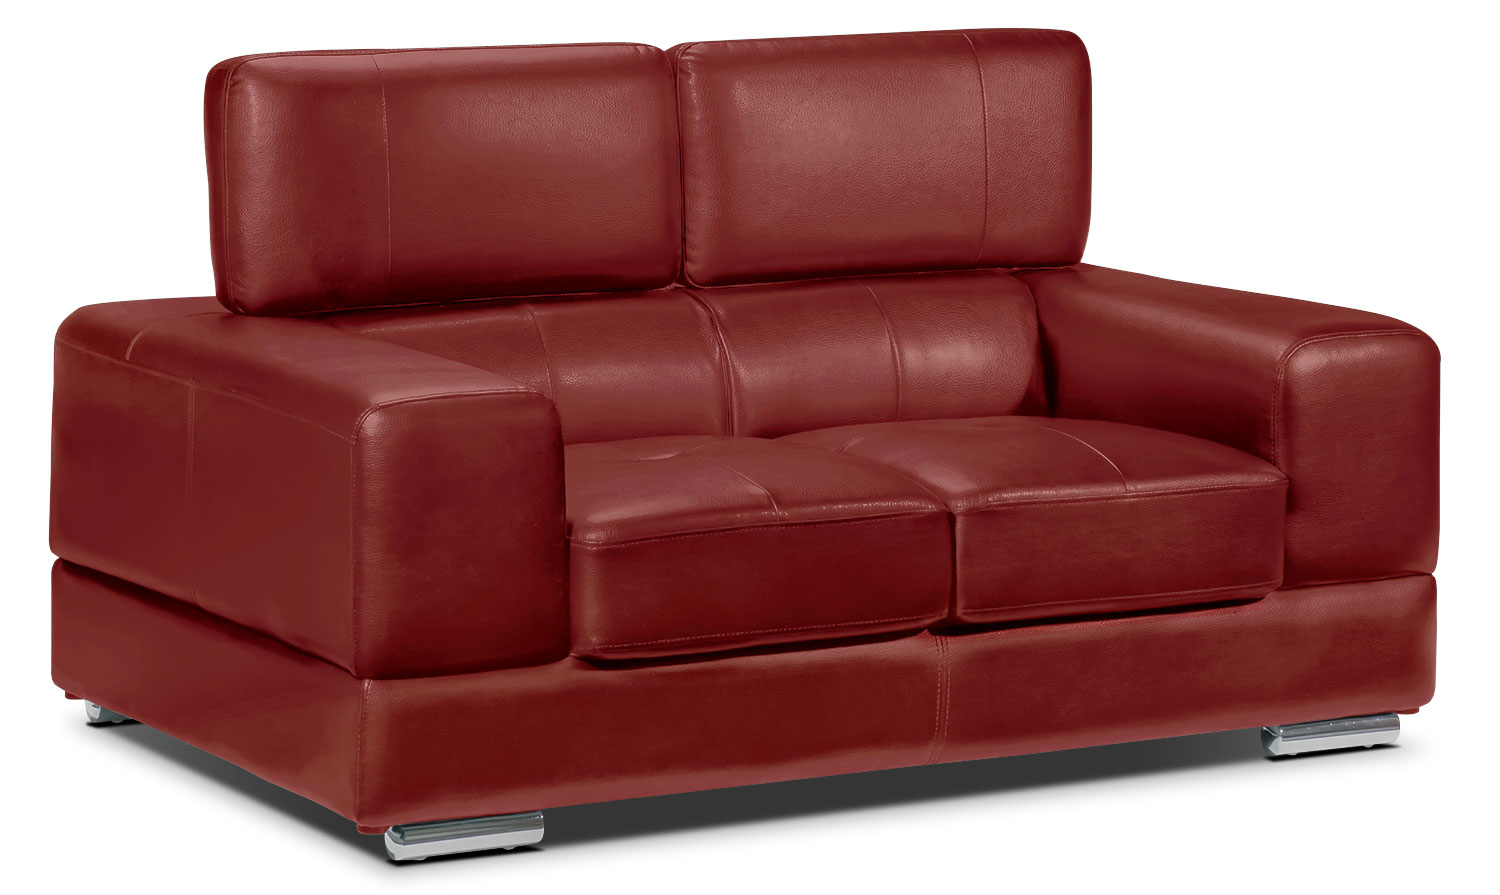 Driscoll Loveseat - Red